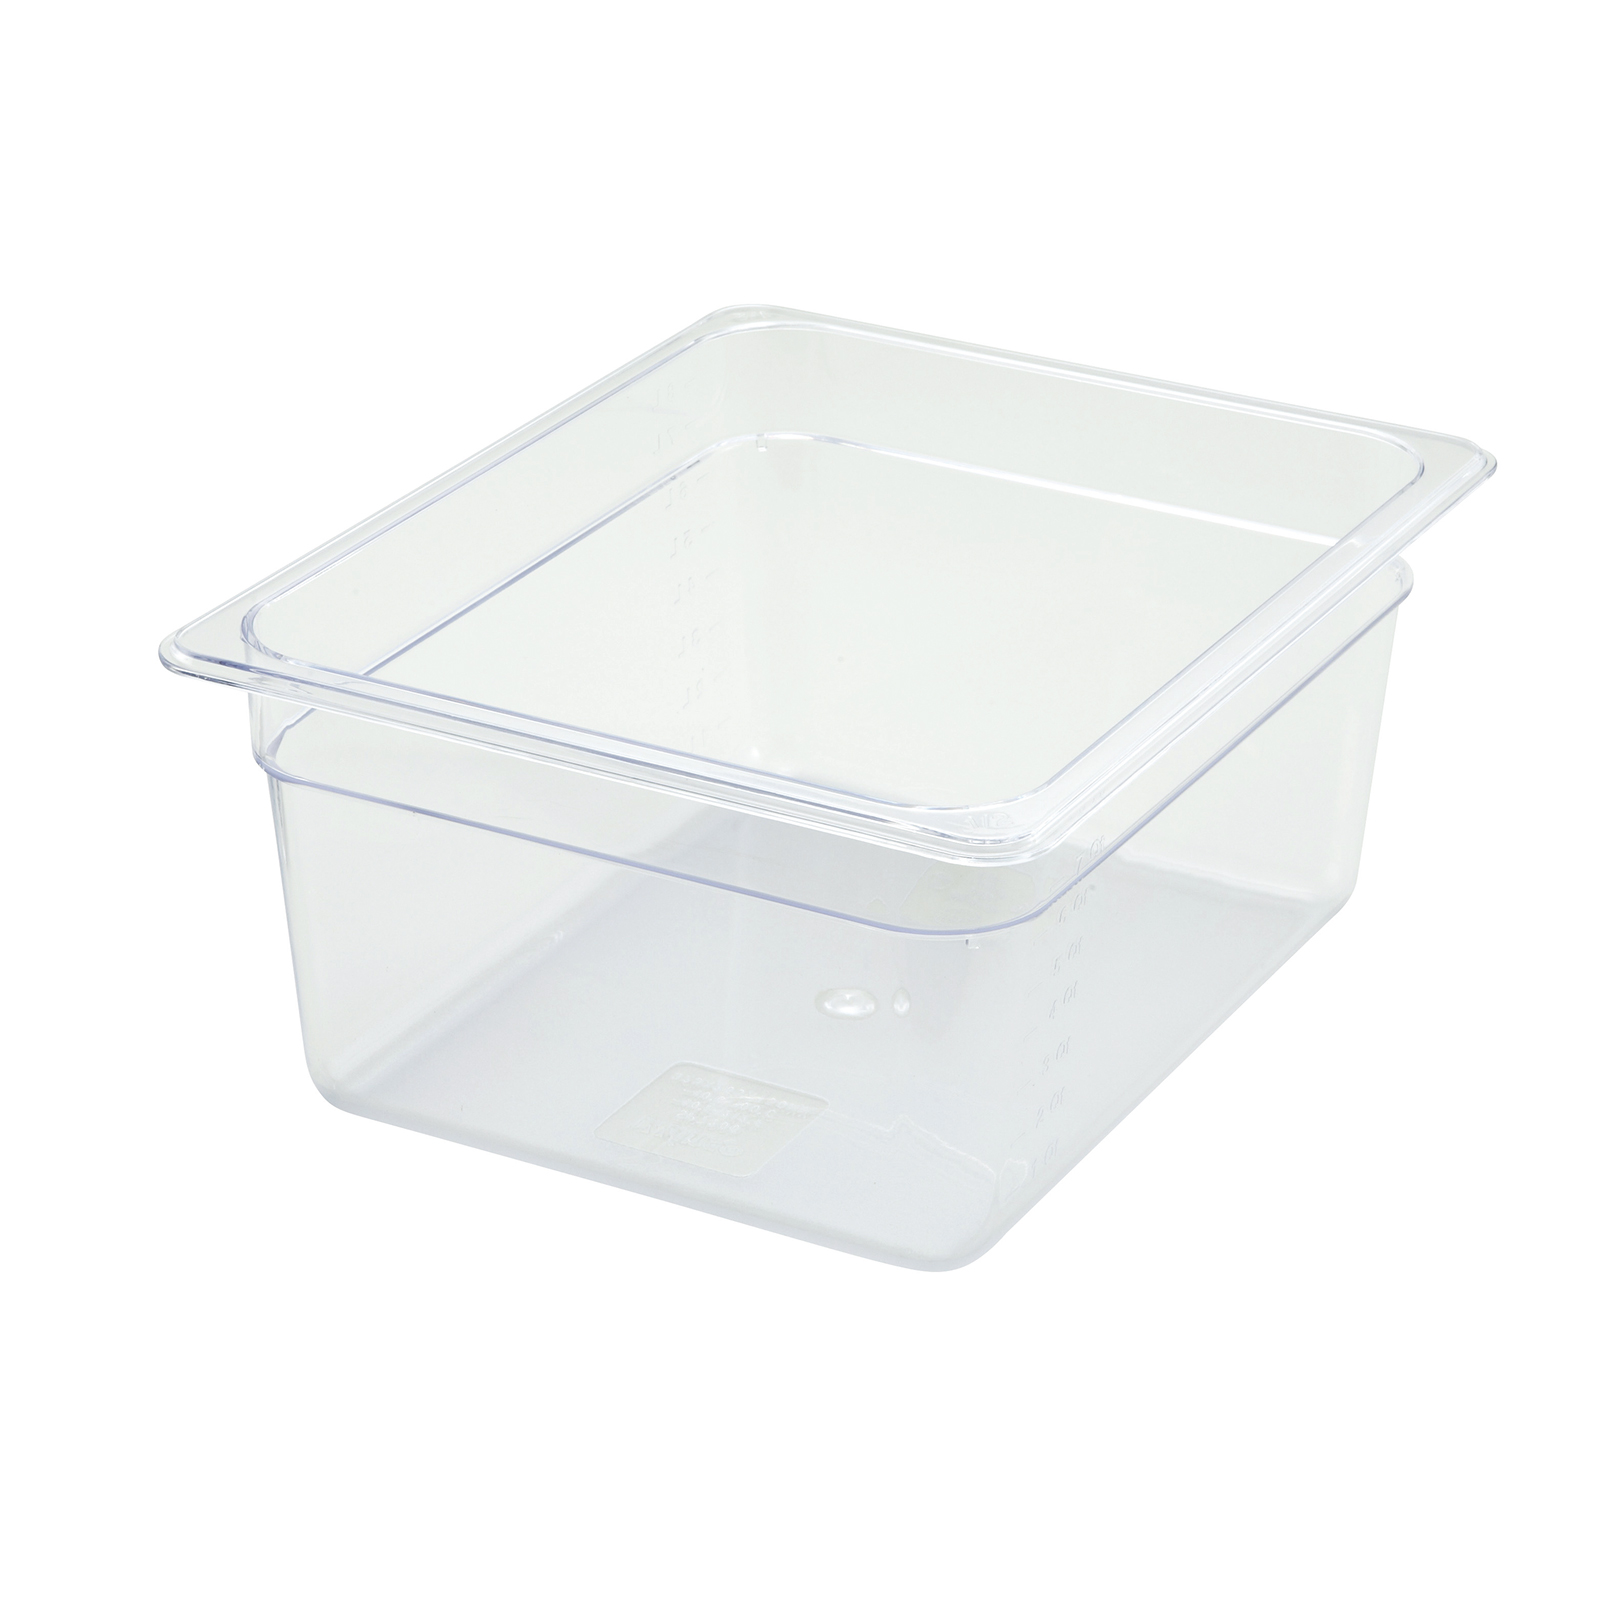 2410-019 Winco SP7206 food pan, 1/2size 6in D, plastic